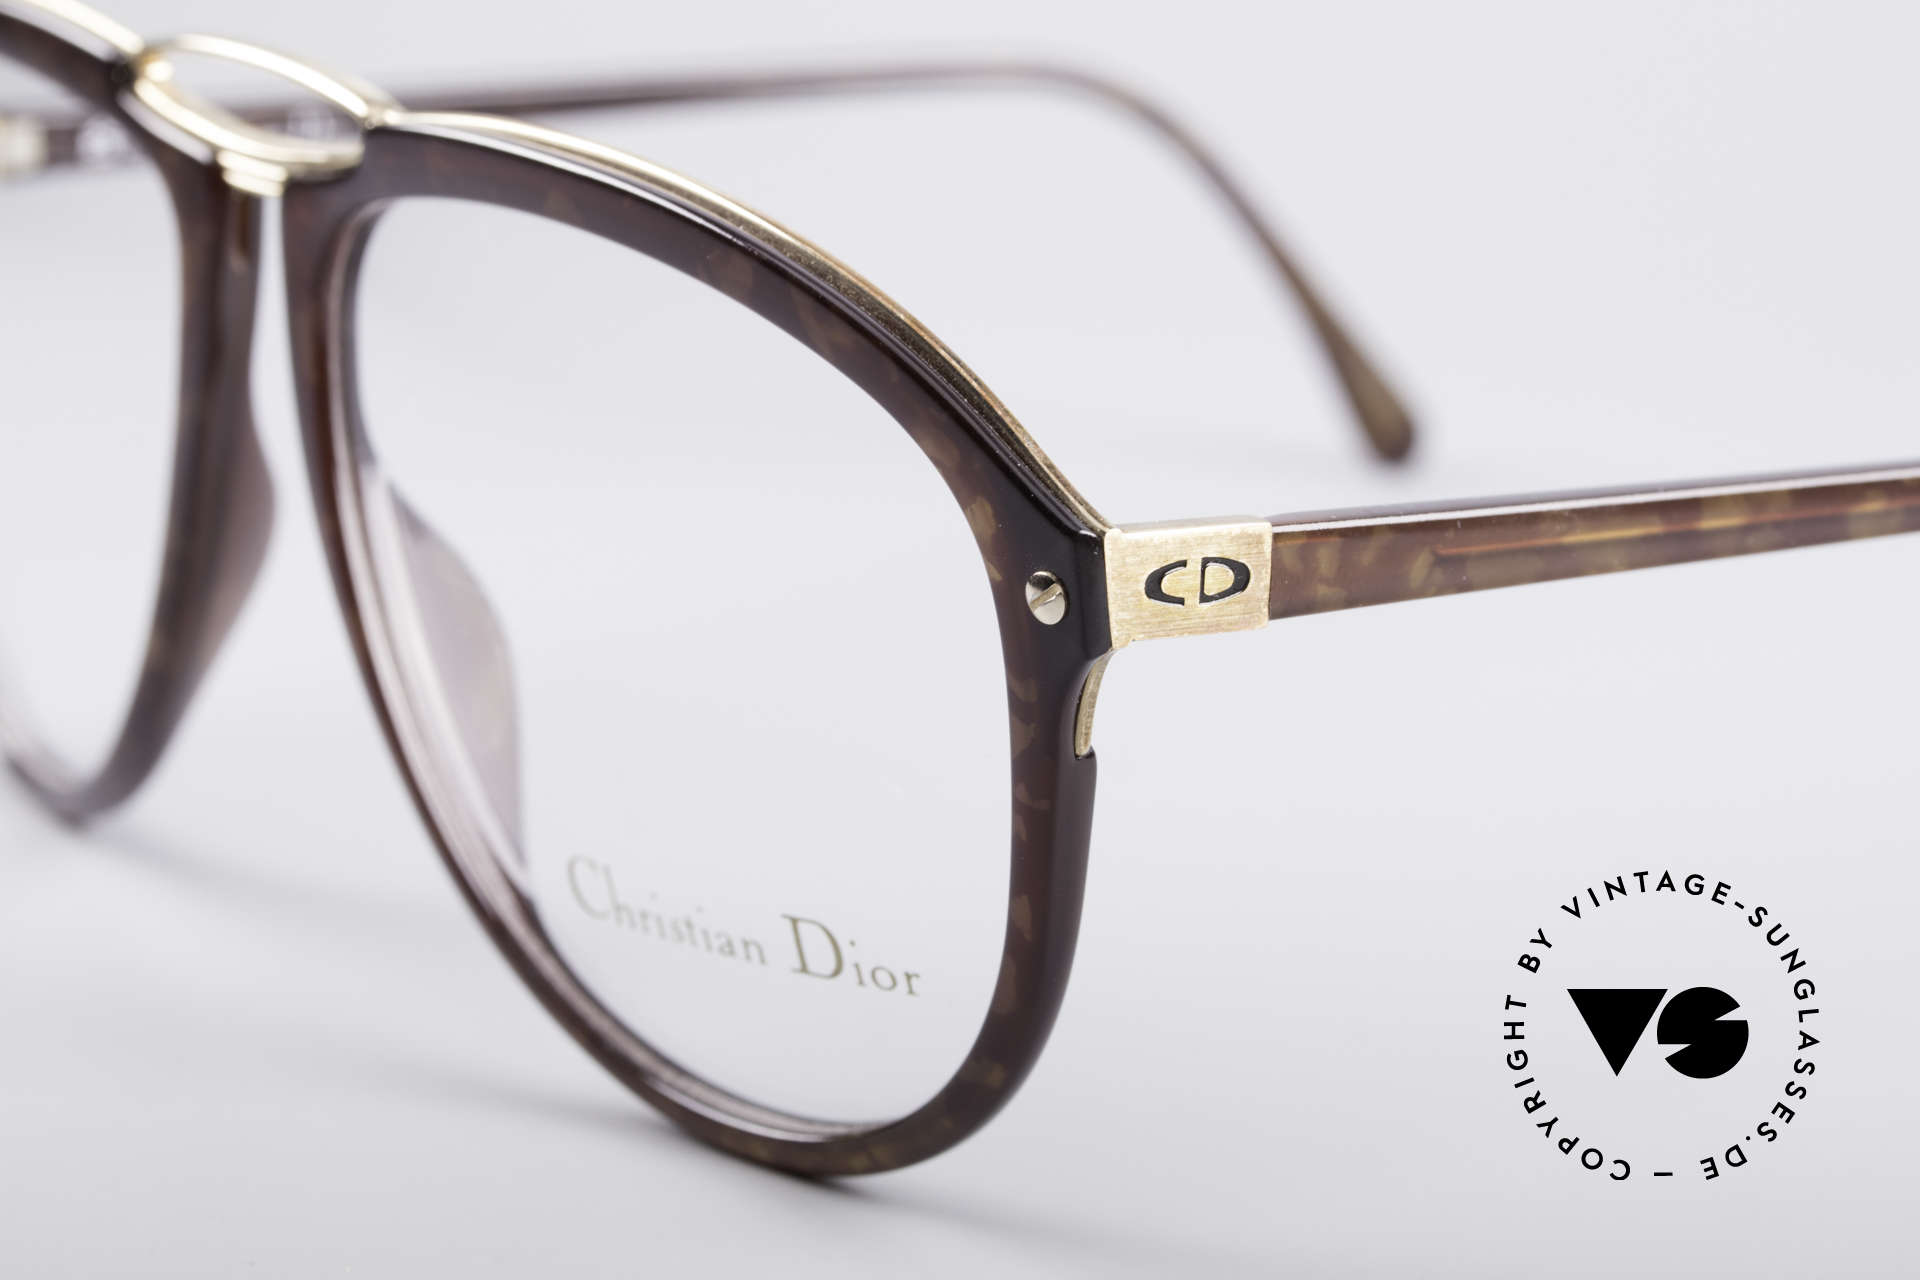 Christian Dior 2523 80's No Retro Glasses, tangible premium craftsmanship (made in Germany), Made for Men